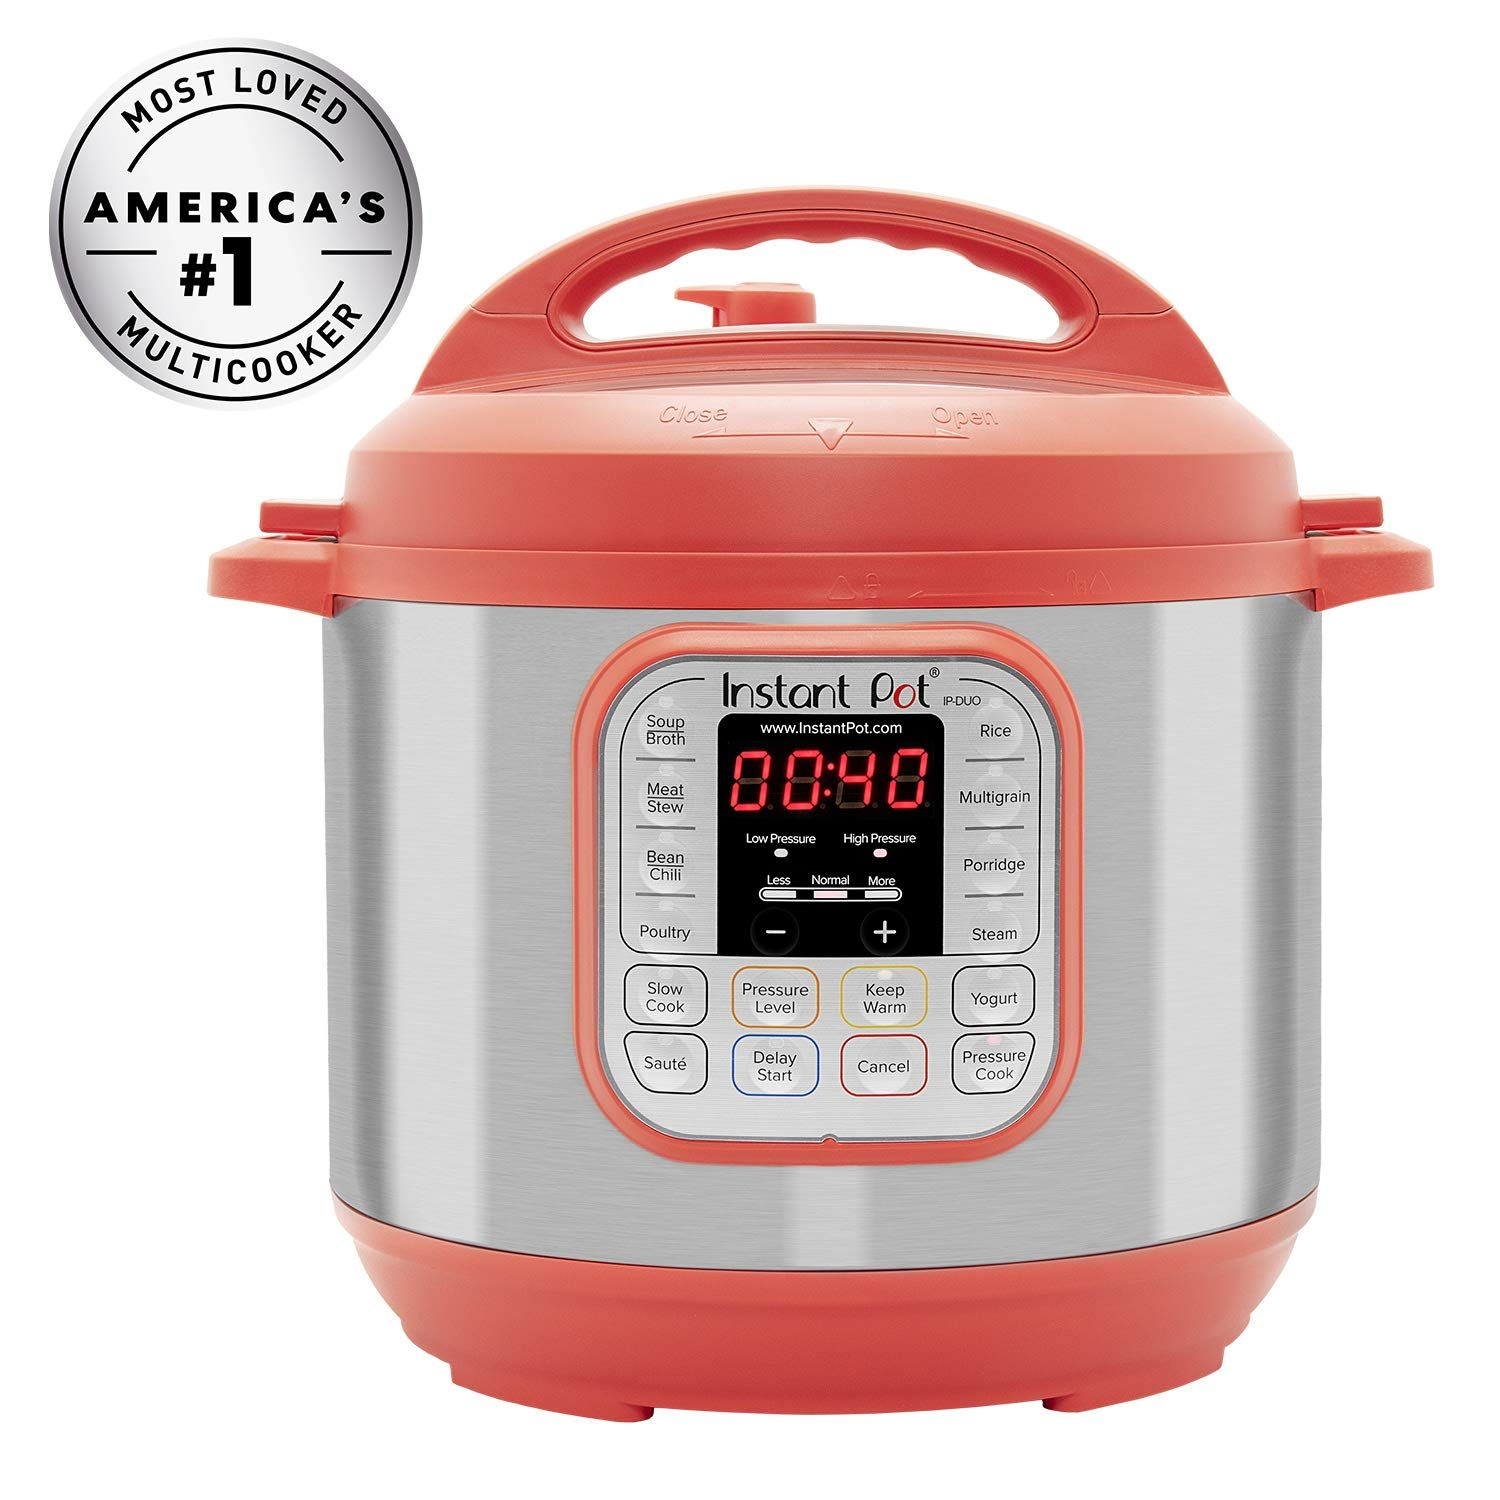 Instant Pot IPDUO60RED Pressure Cooker, 6 quart, Red